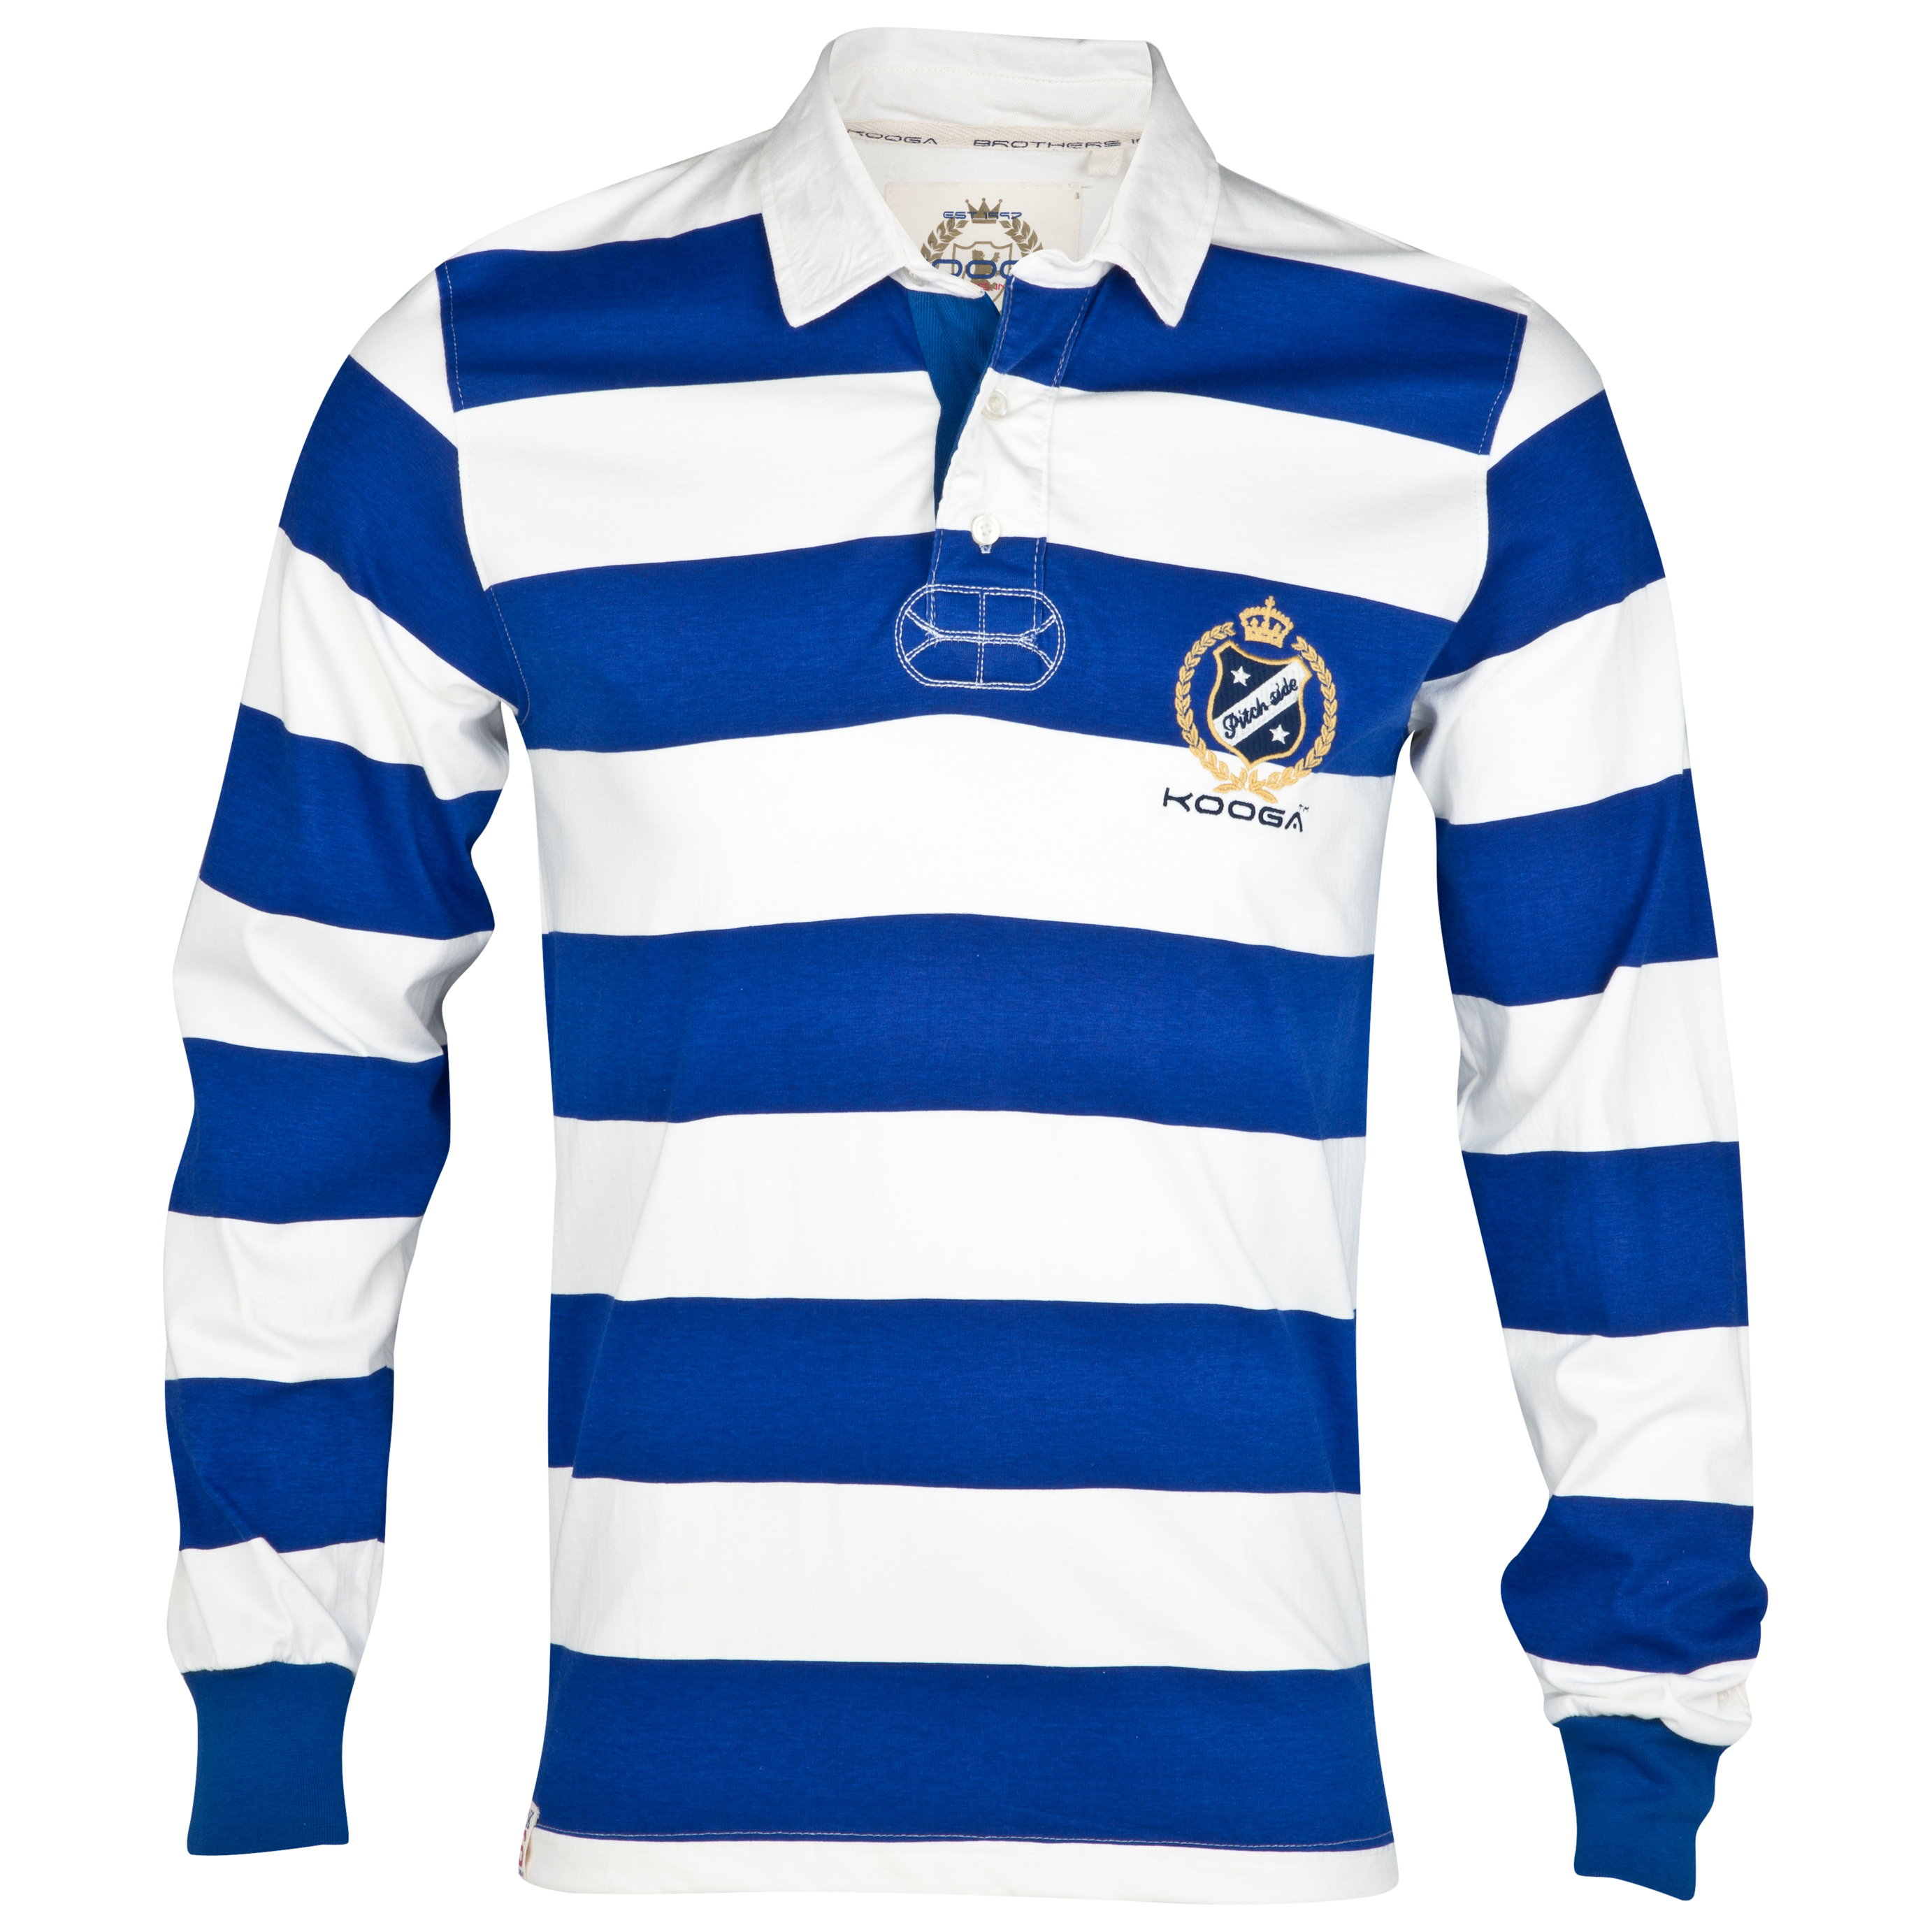 Kooga Rugby Shirt - DarkBlue/Off White